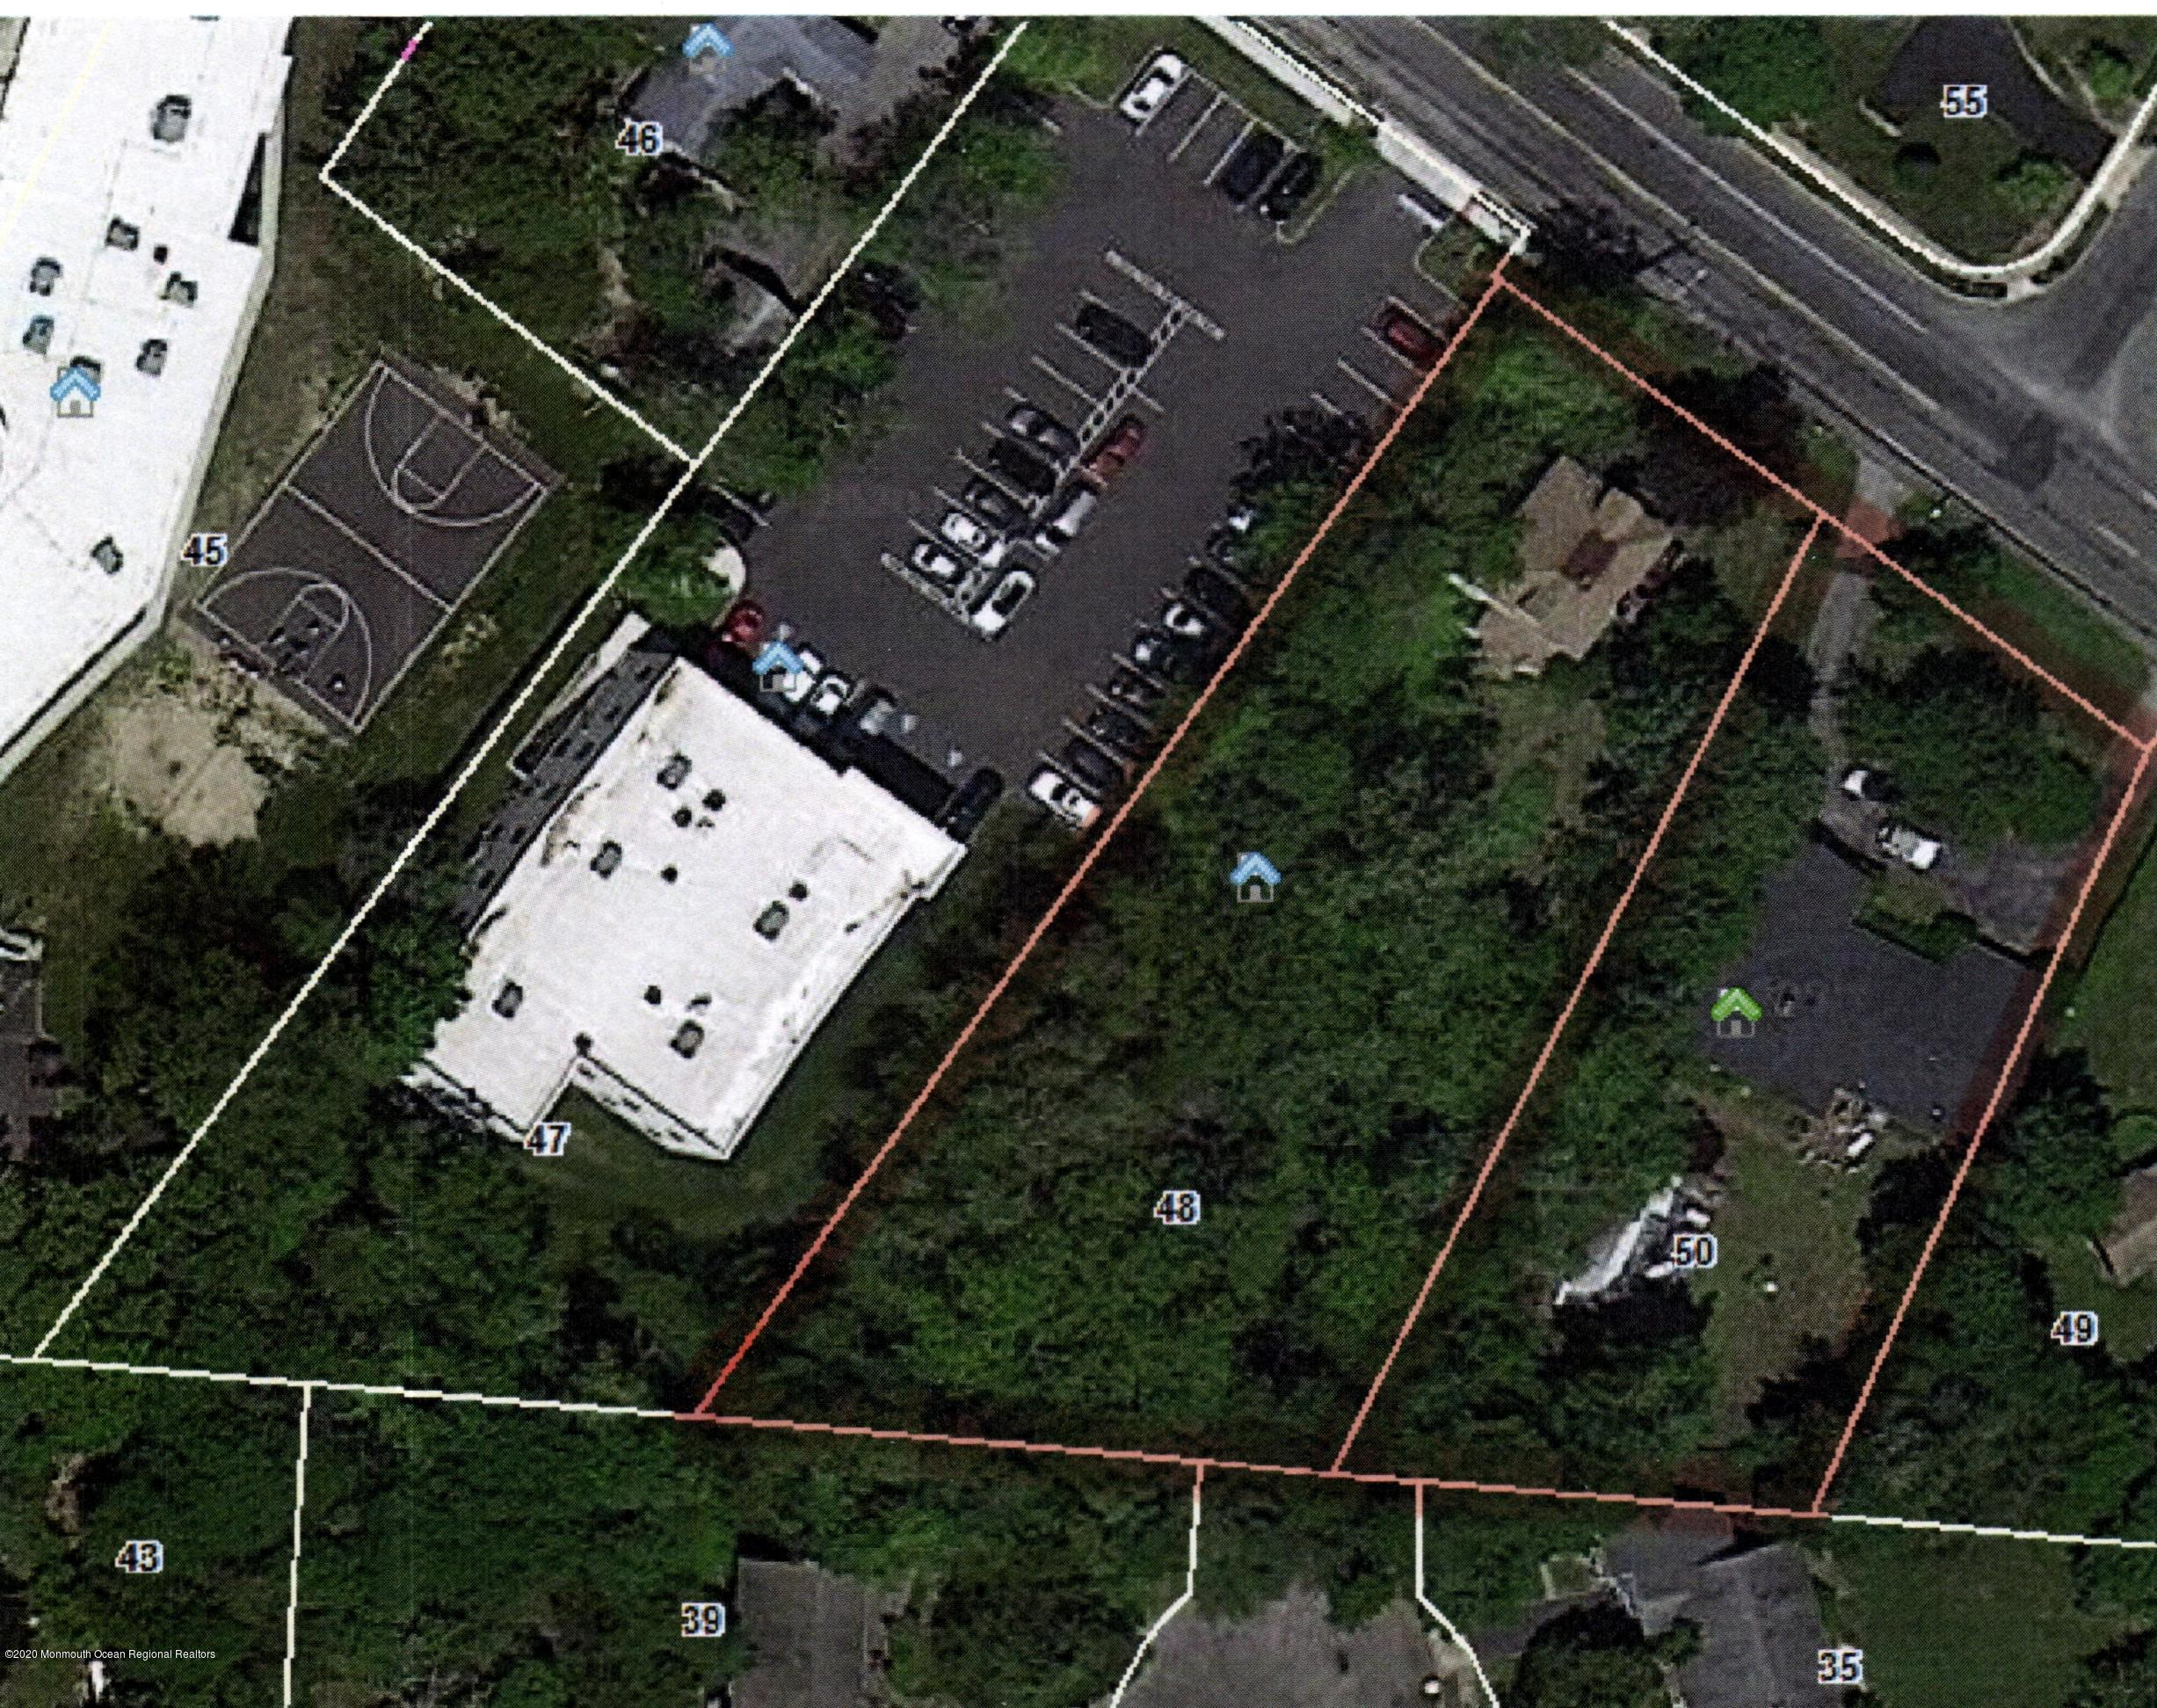 Aerial View of both lots highlighted